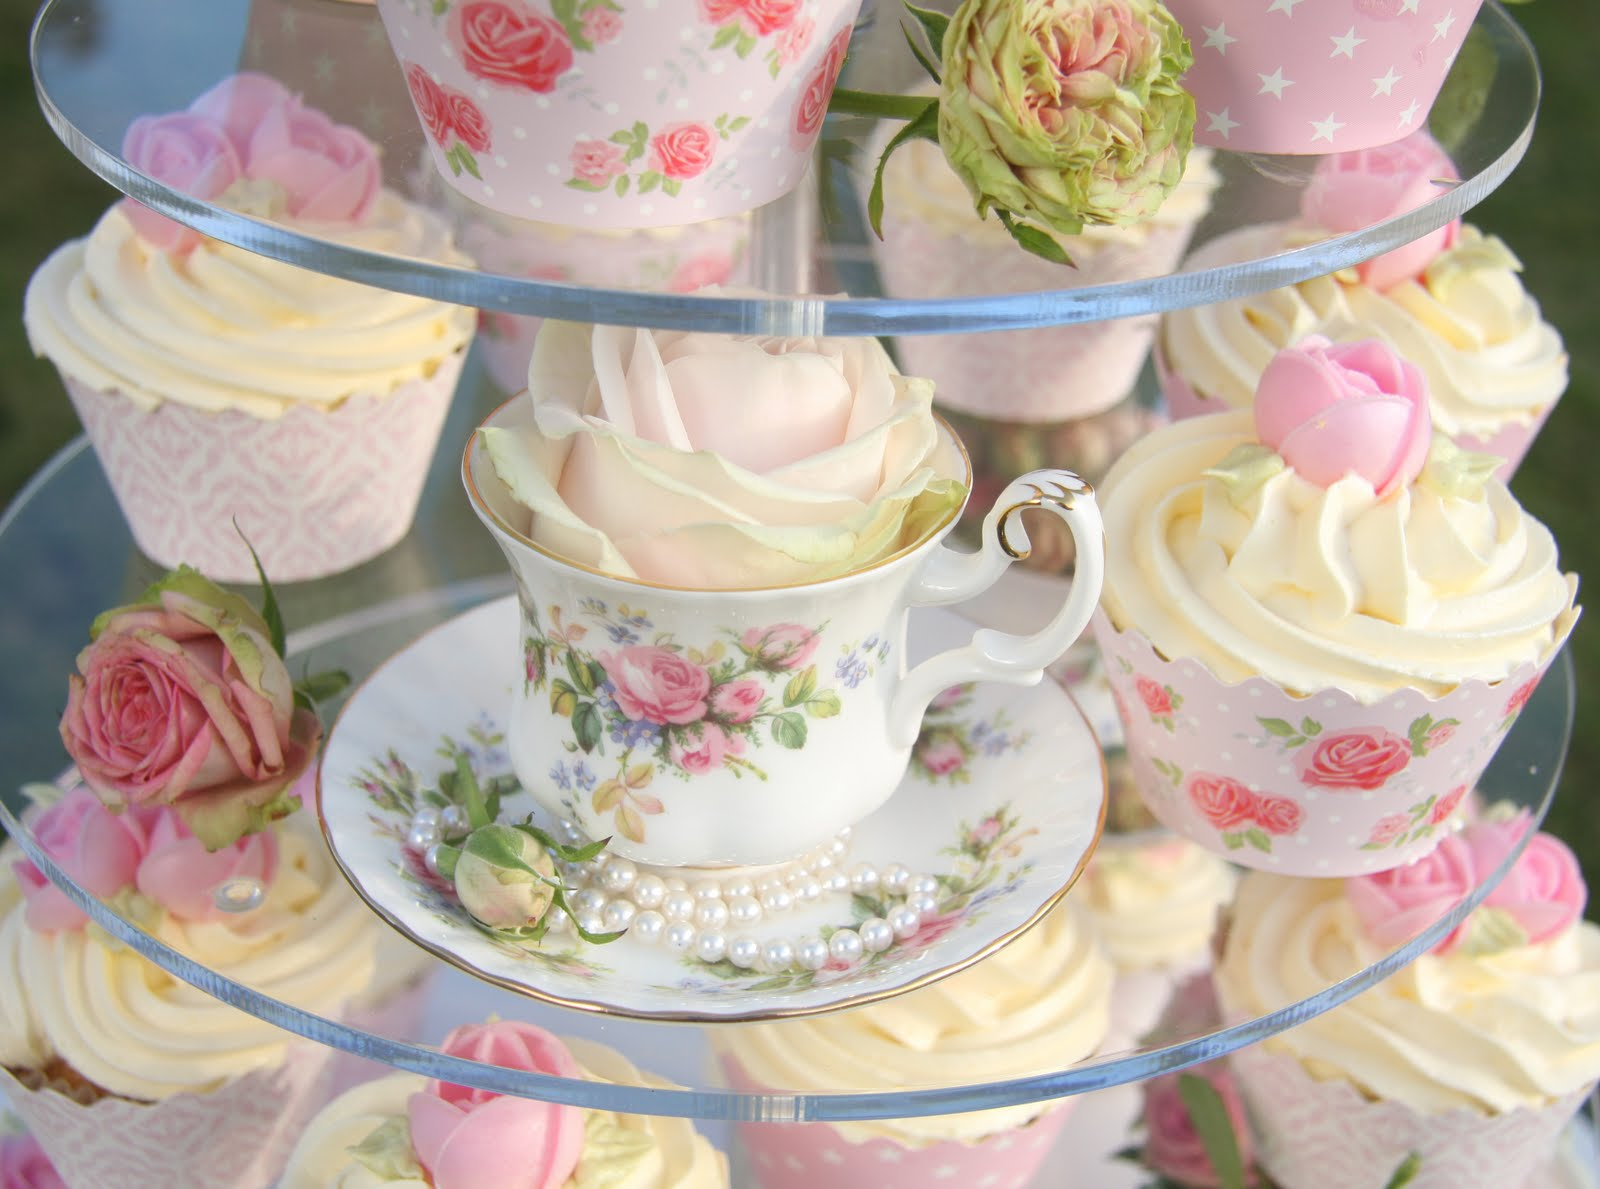 Tea Party Cake Images : Life is What You Bake it!: Vintage Cake, Cupcakes & Tea Cups